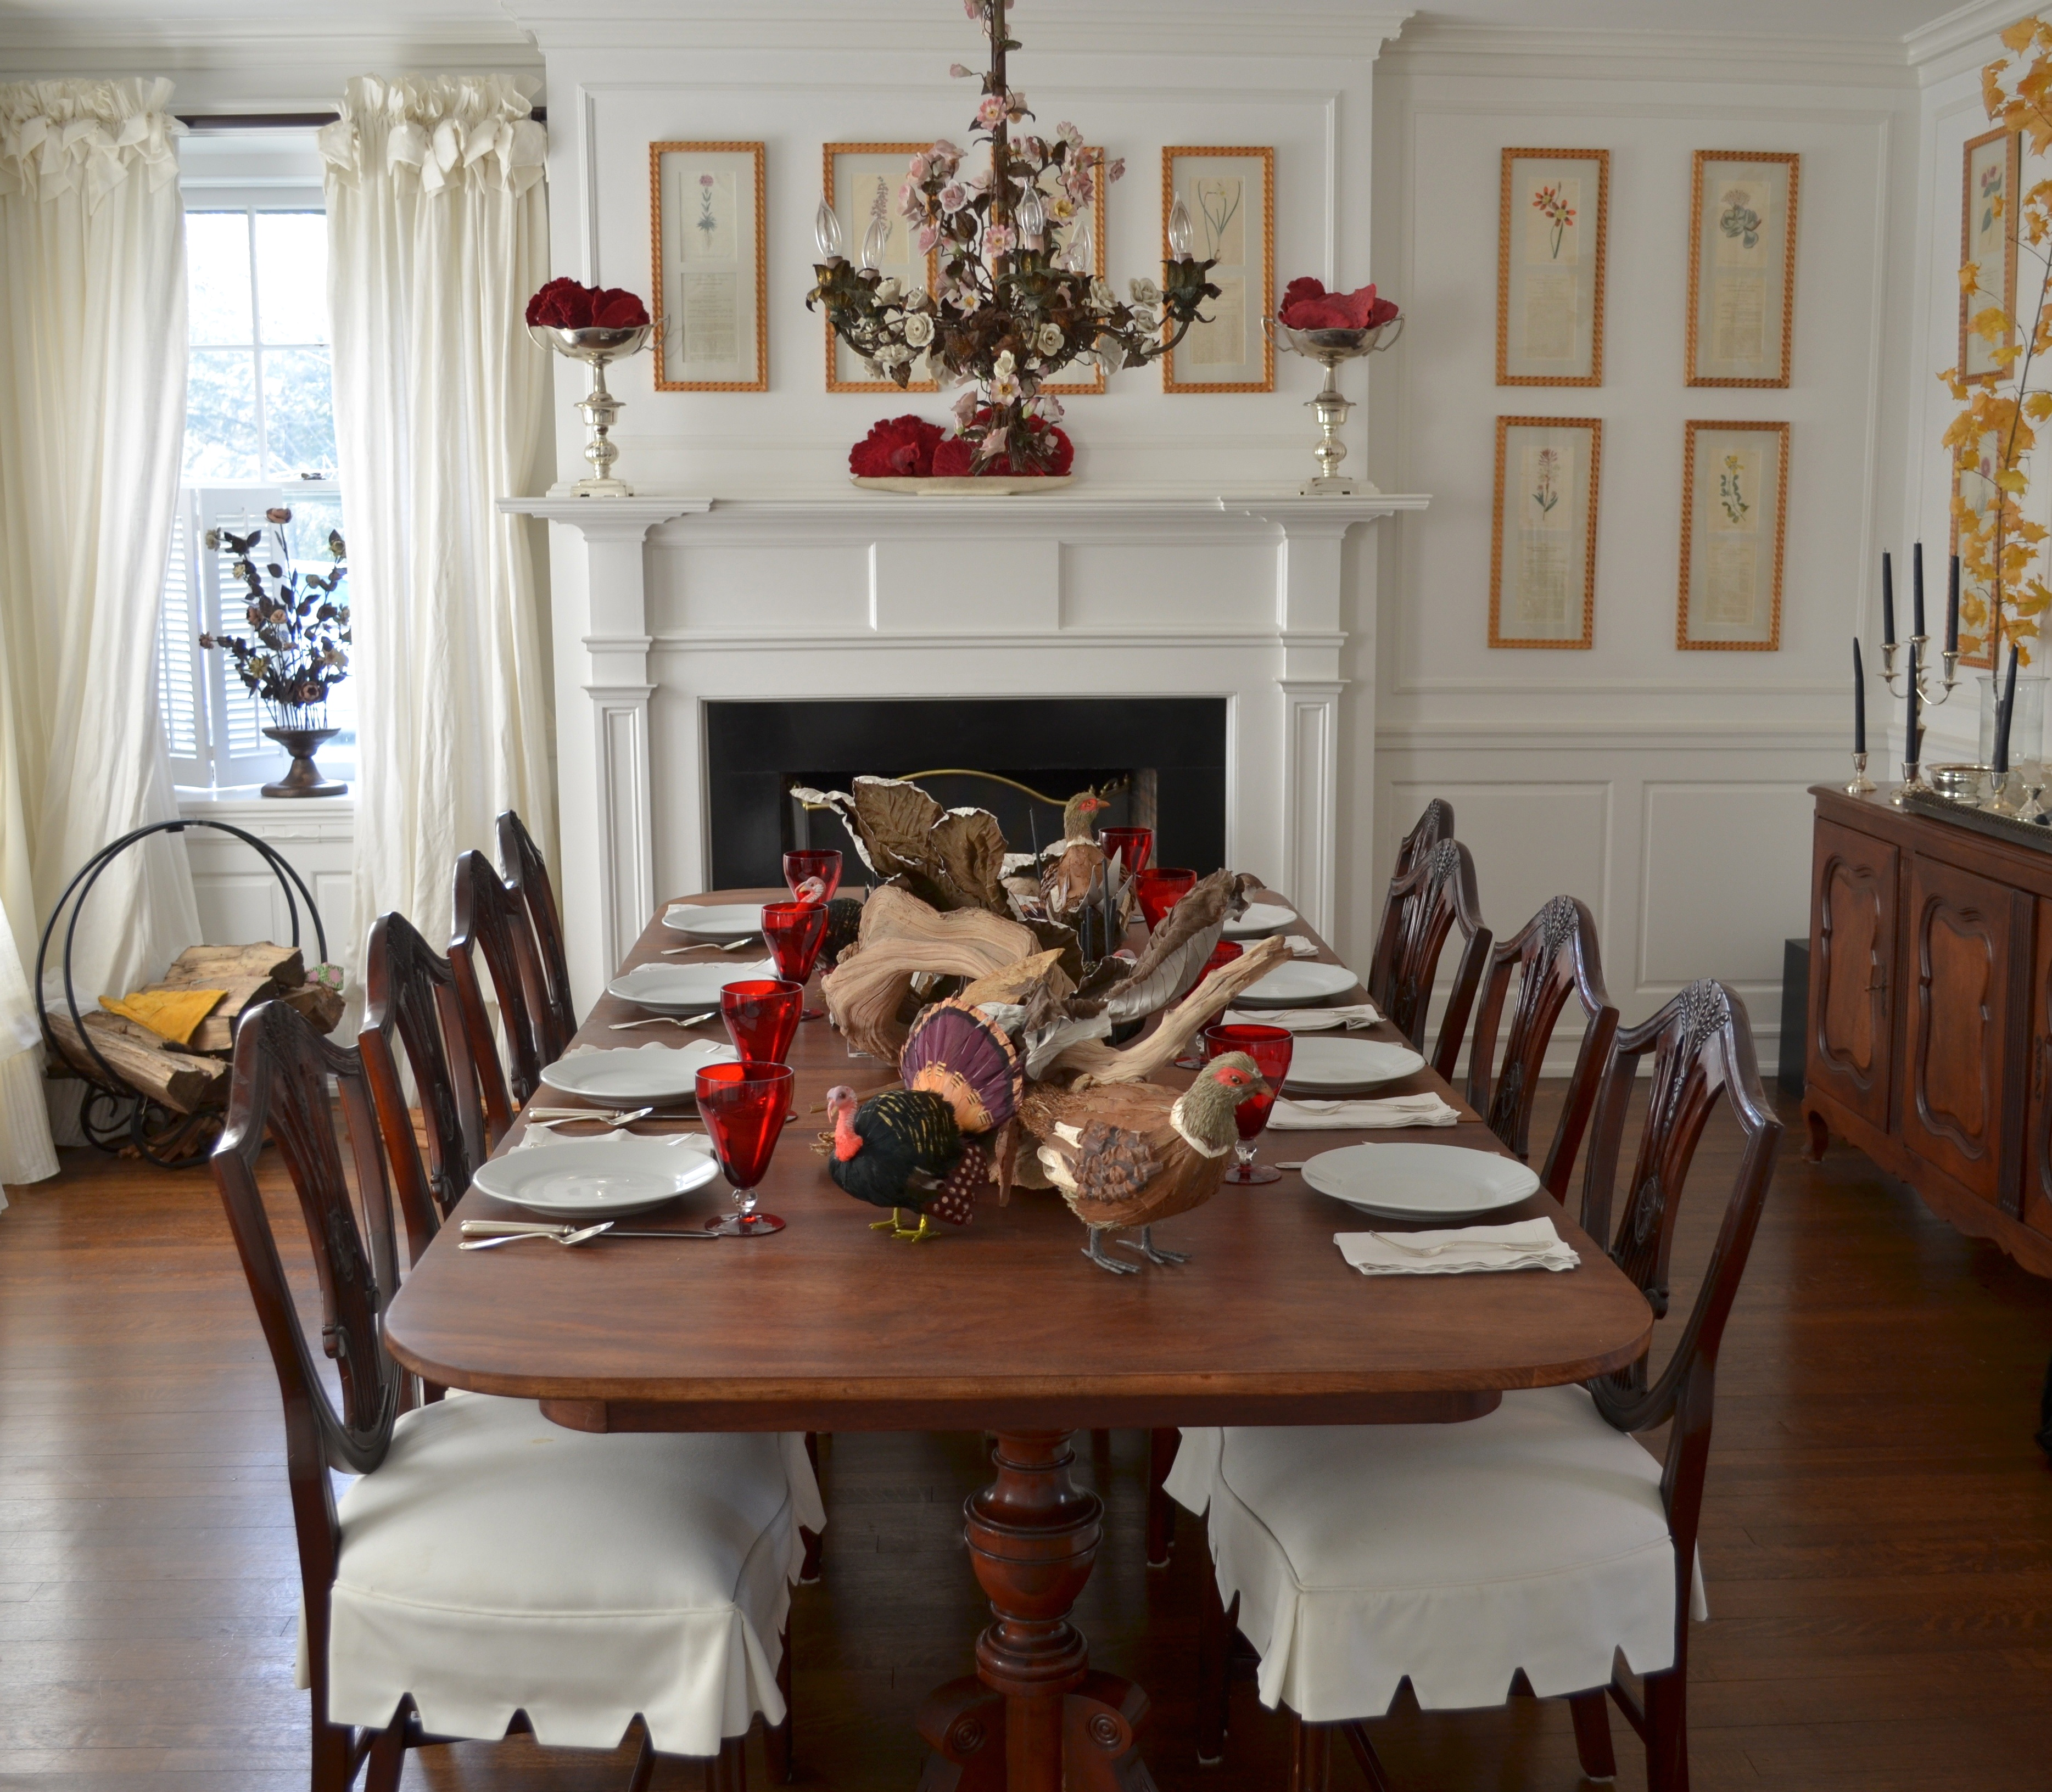 Kdhamptons design celebrity caterer peter callahan shares for Dining room tablescapes ideas